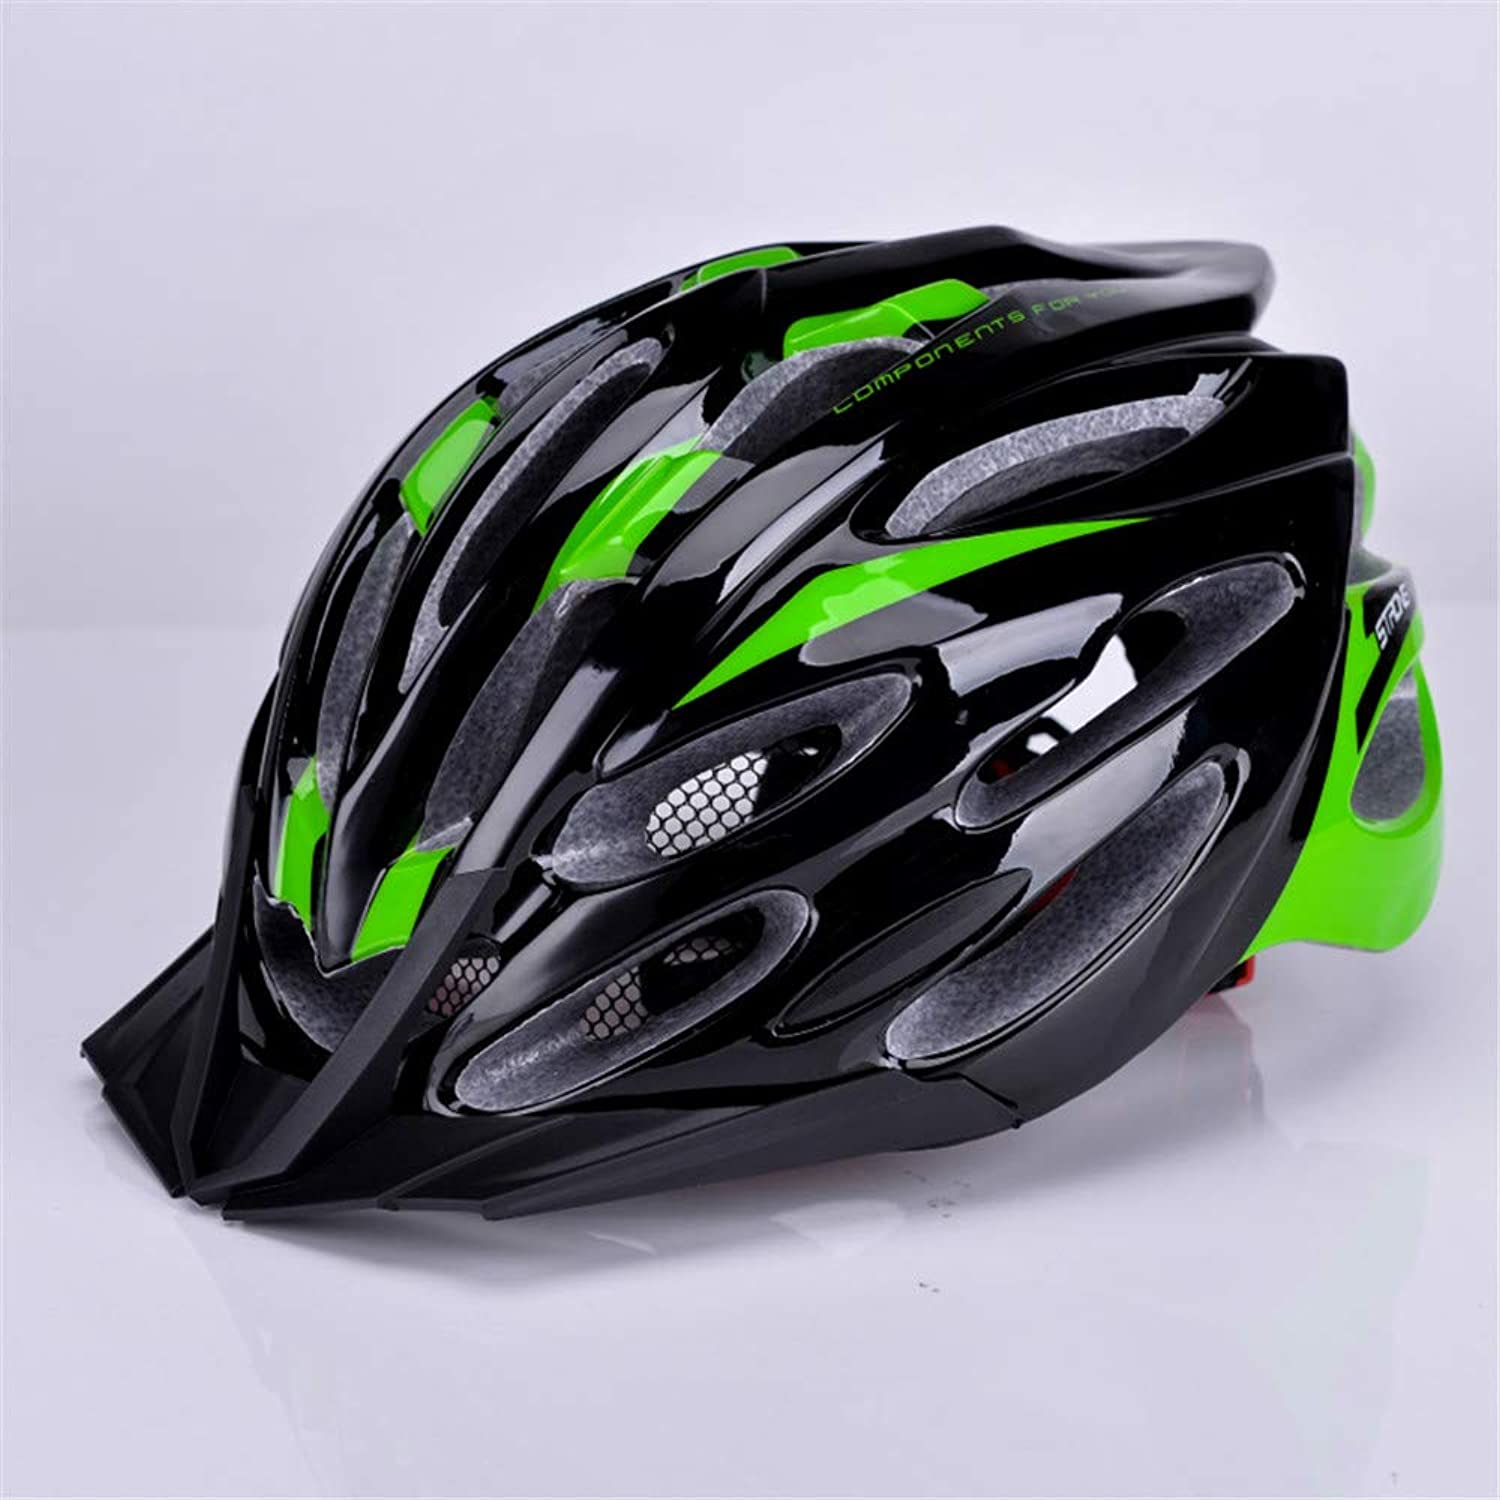 DirectSelling Bicycle Helmet Mountainous Bicycle Riding Helmet Road Safety Helmet for Men and Women with Hat Eaves InsectProof Net,Green